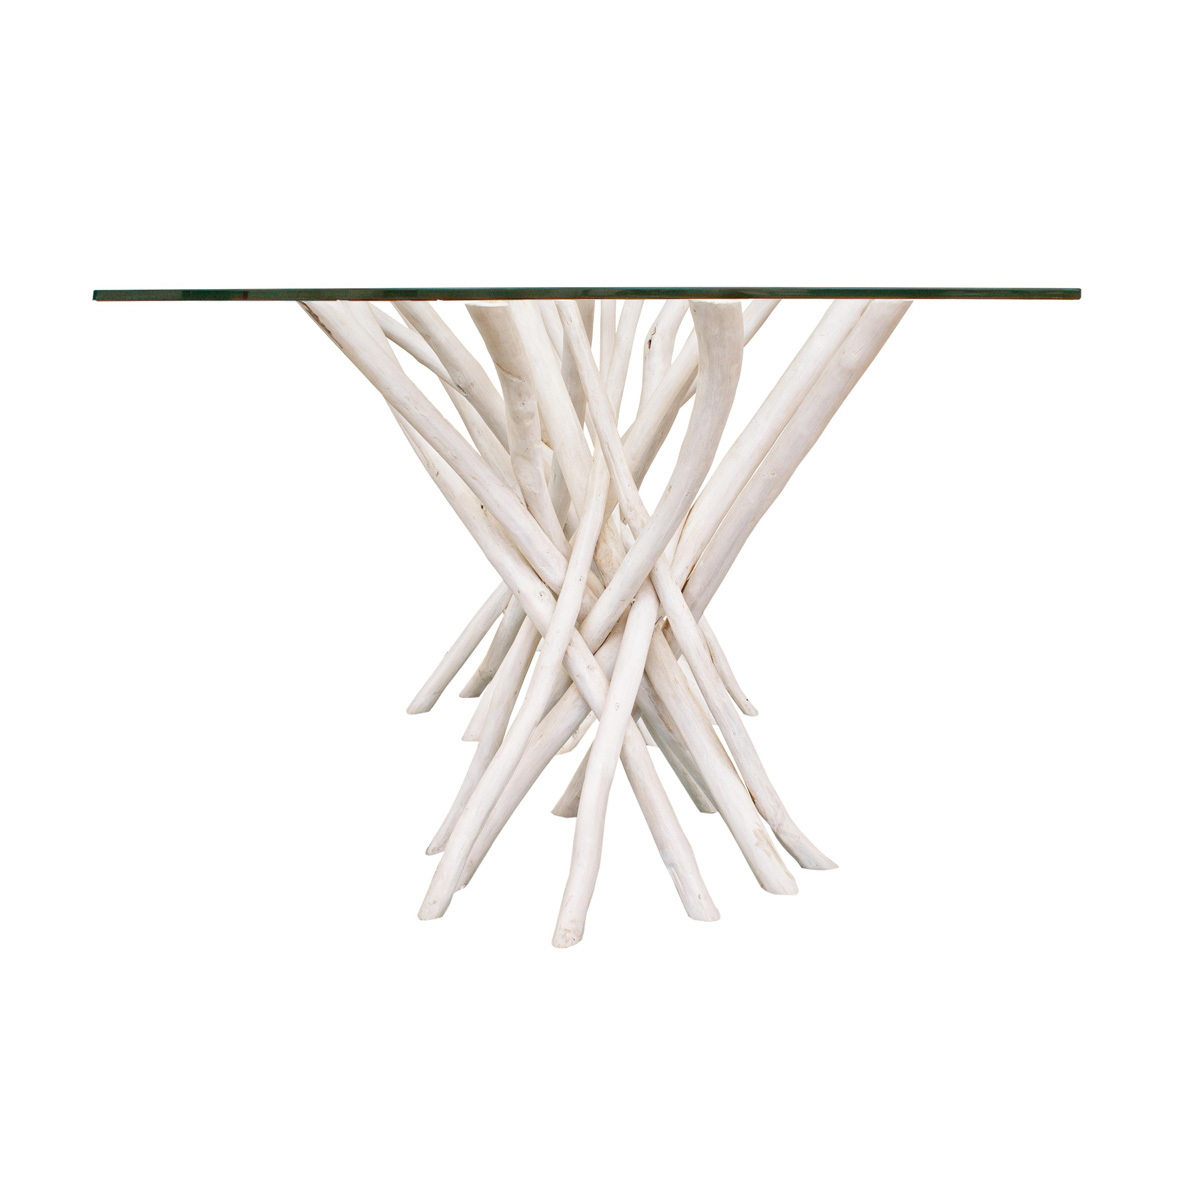 Photos 3: Bizzotto Wood and glass table l. 110 x 60 0680408